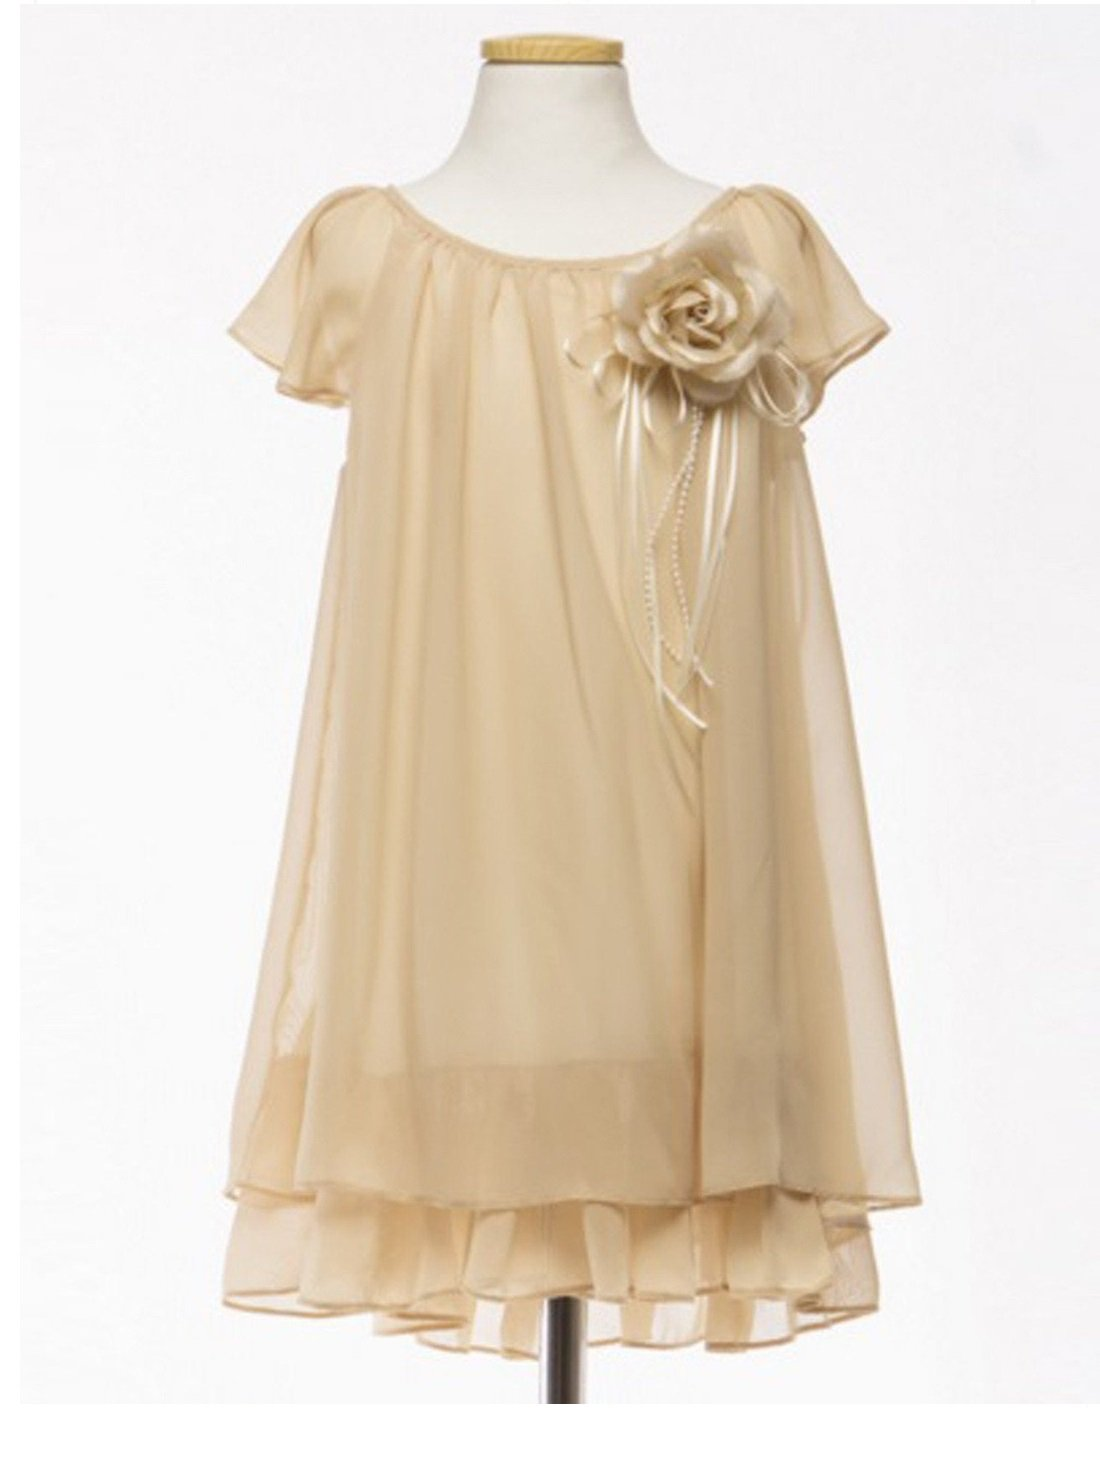 Flower Girl Dress Two Layered Chiffon Pleated Girls Dress Champagne Party Dress Special Occasion Dress